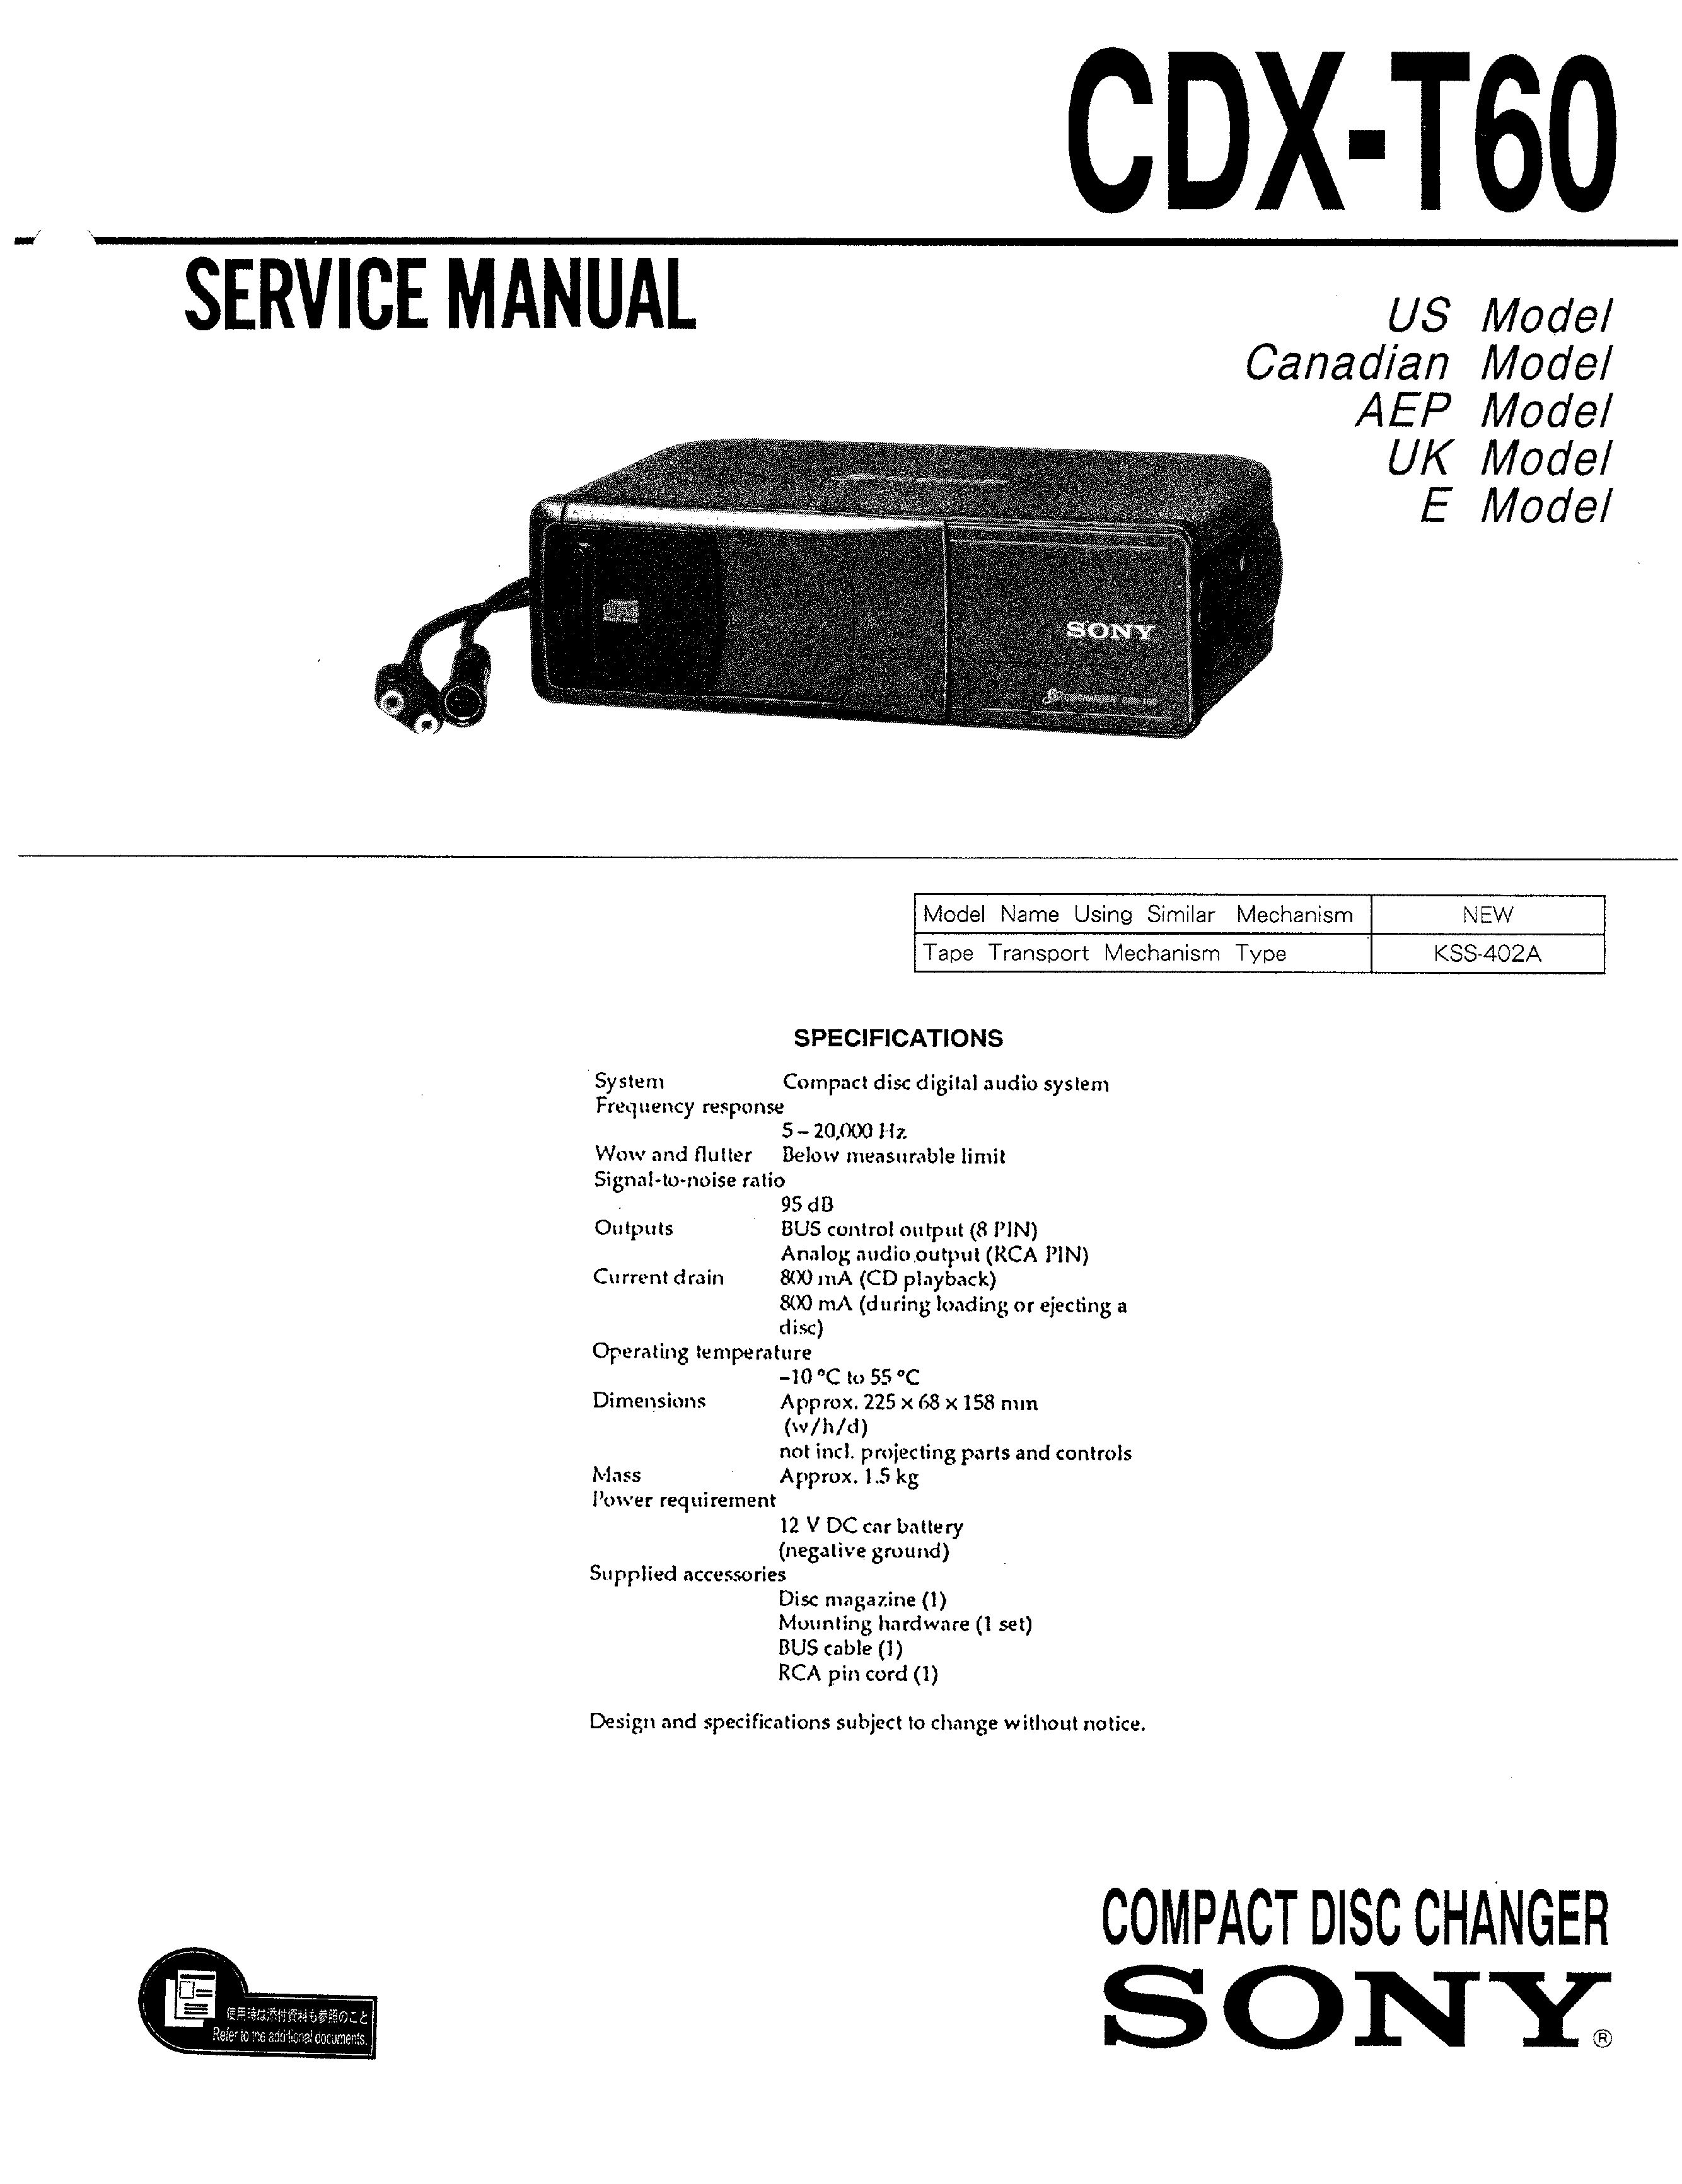 T60 Manual 700cc And Roadster Grundig Stereo Wiring Array Sony Cdx Service Immediate Download Rh Manualscenter Com